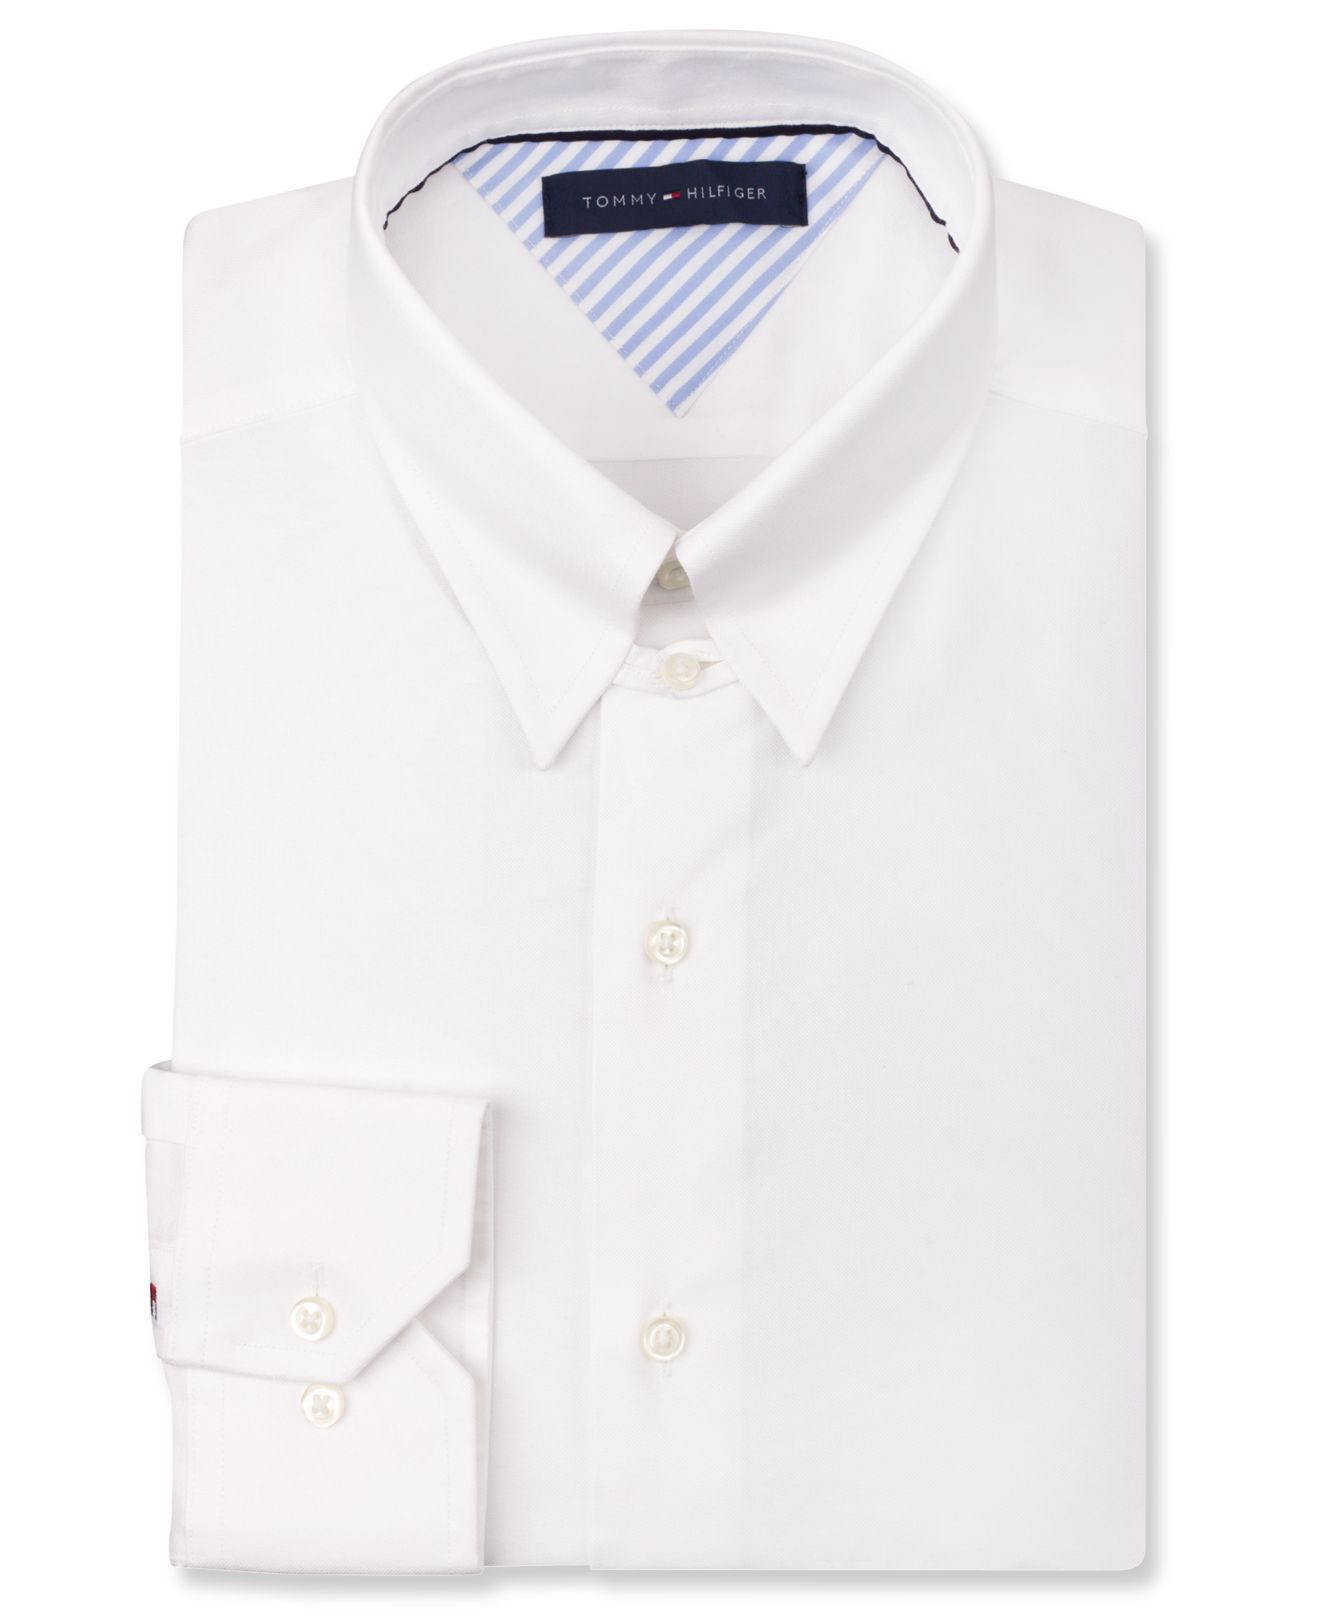 tommy hilfiger white tab collar dress shirt in white for